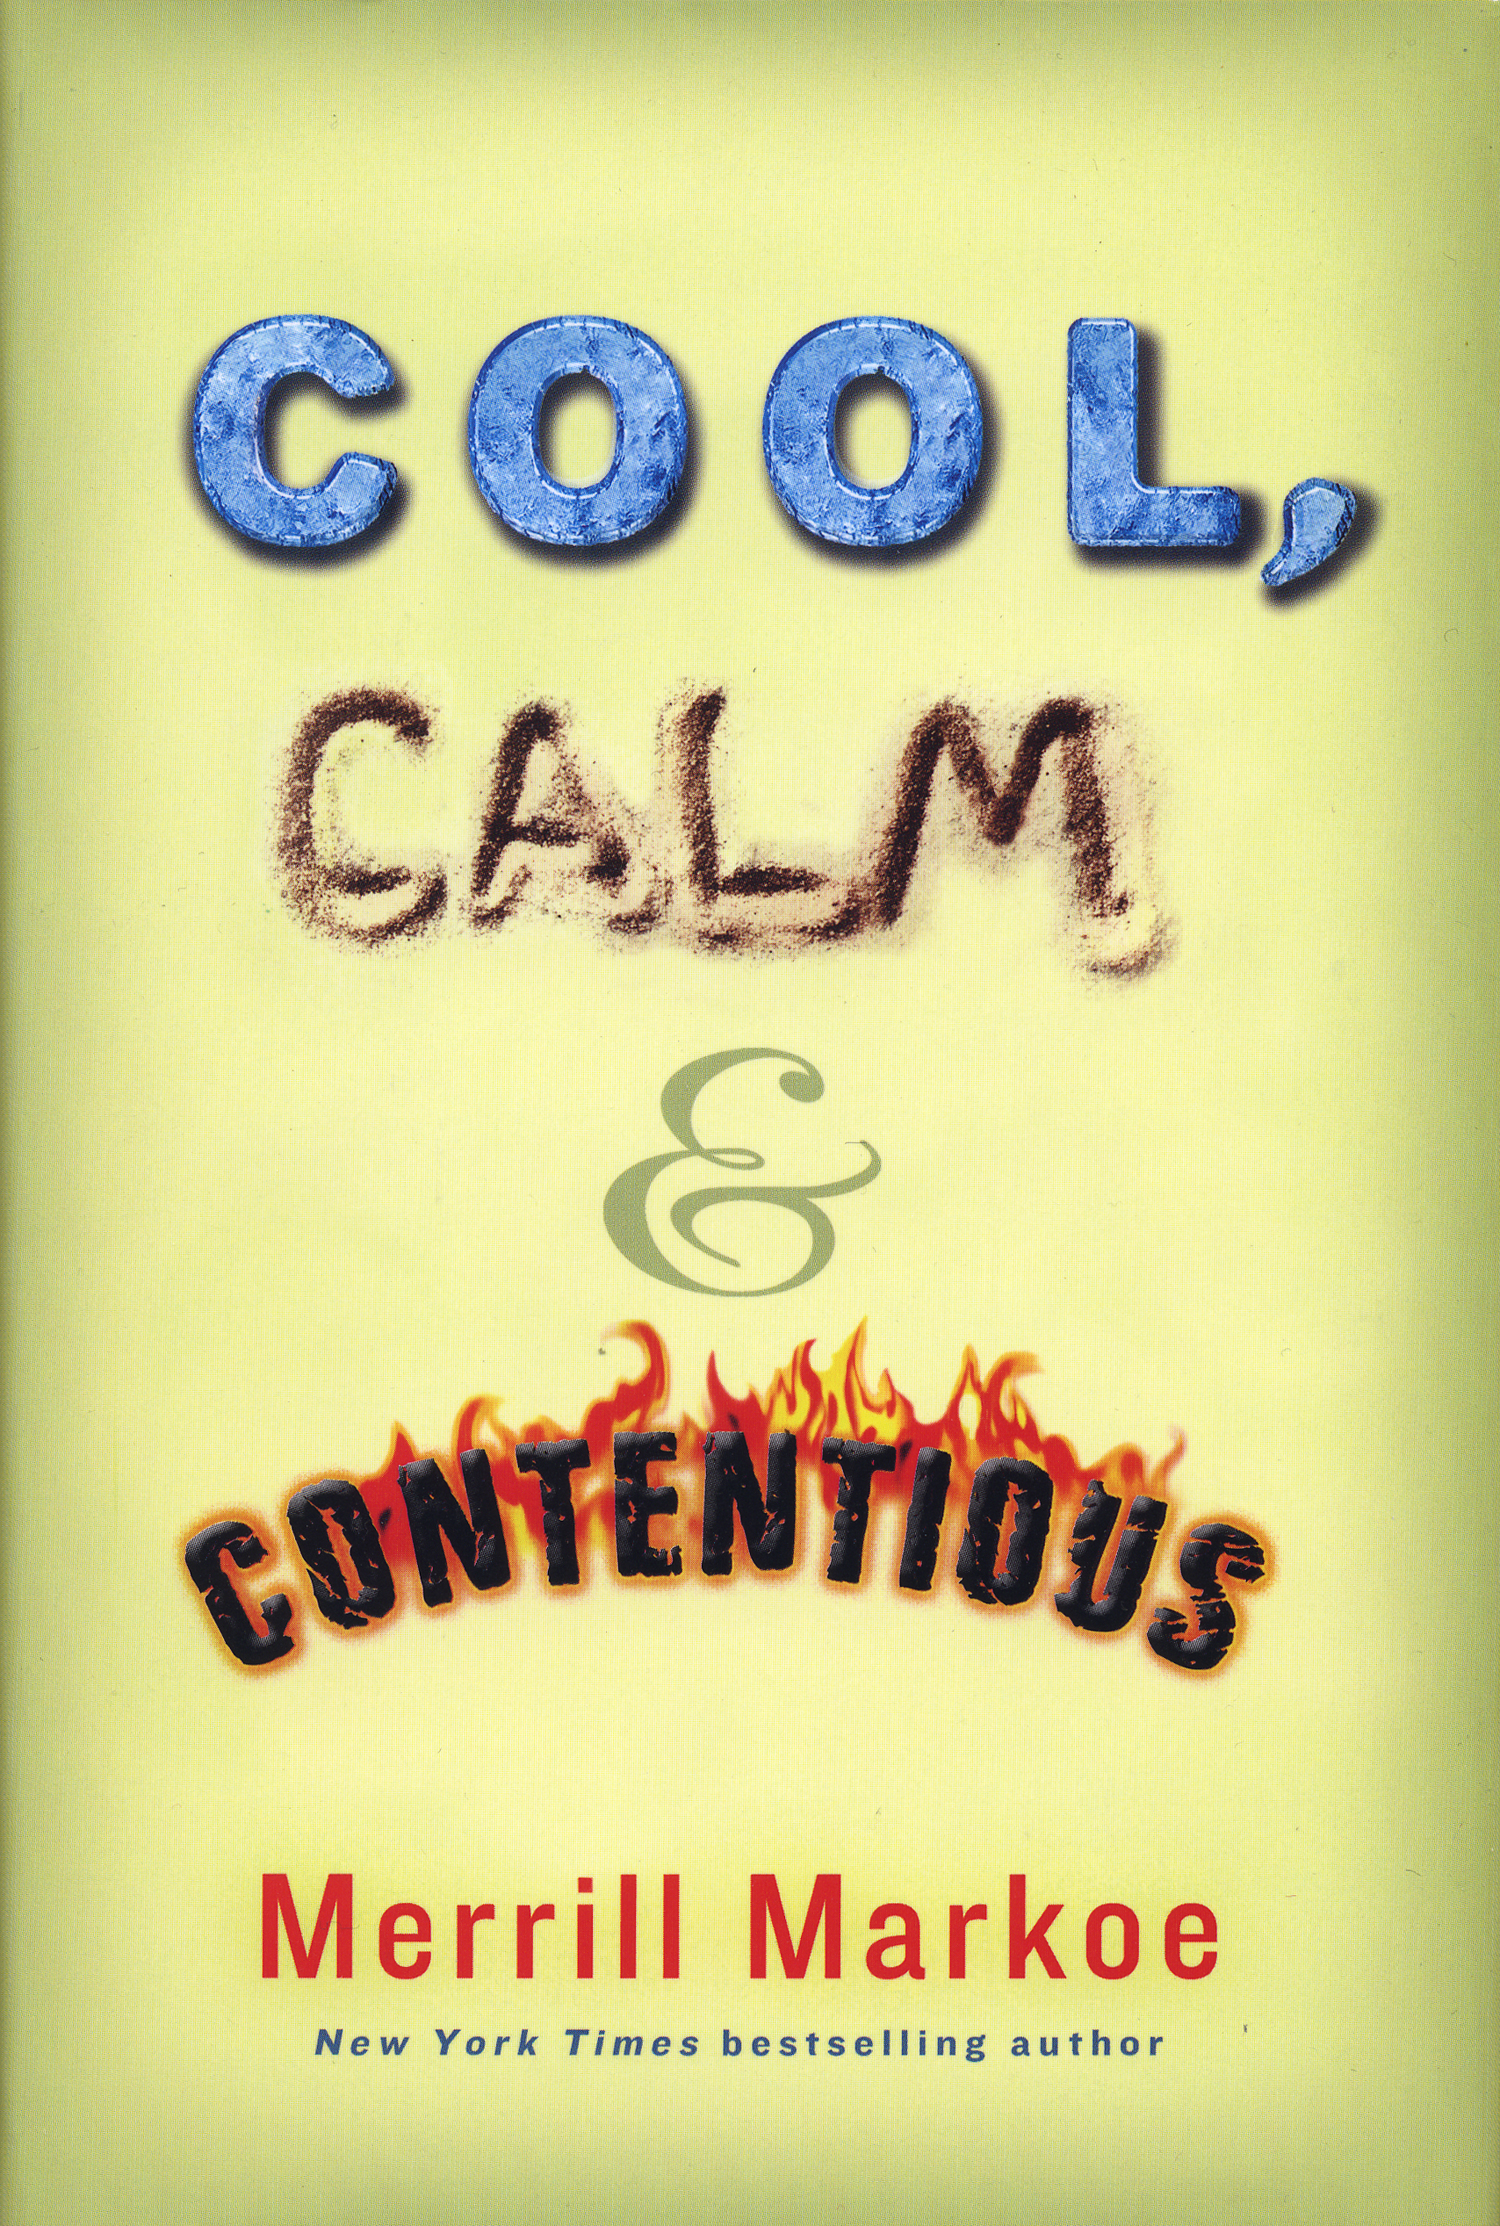 COOL-CALM-AND-CONTAGIOUS-hc-ss6.jpg